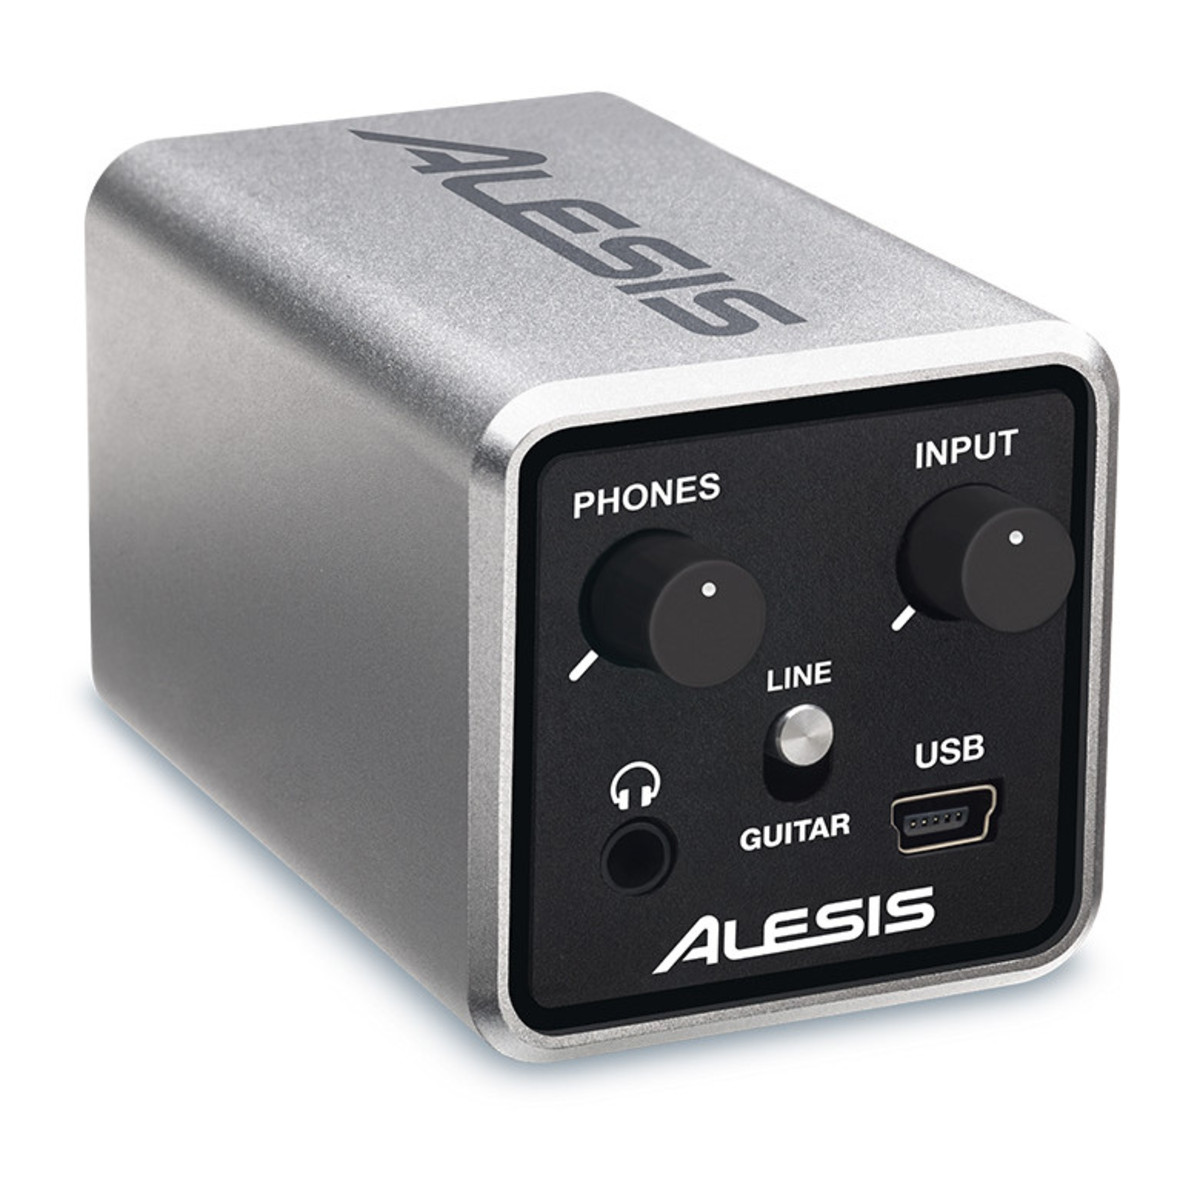 Image of Alesis CORE 1 USB Audio Interface